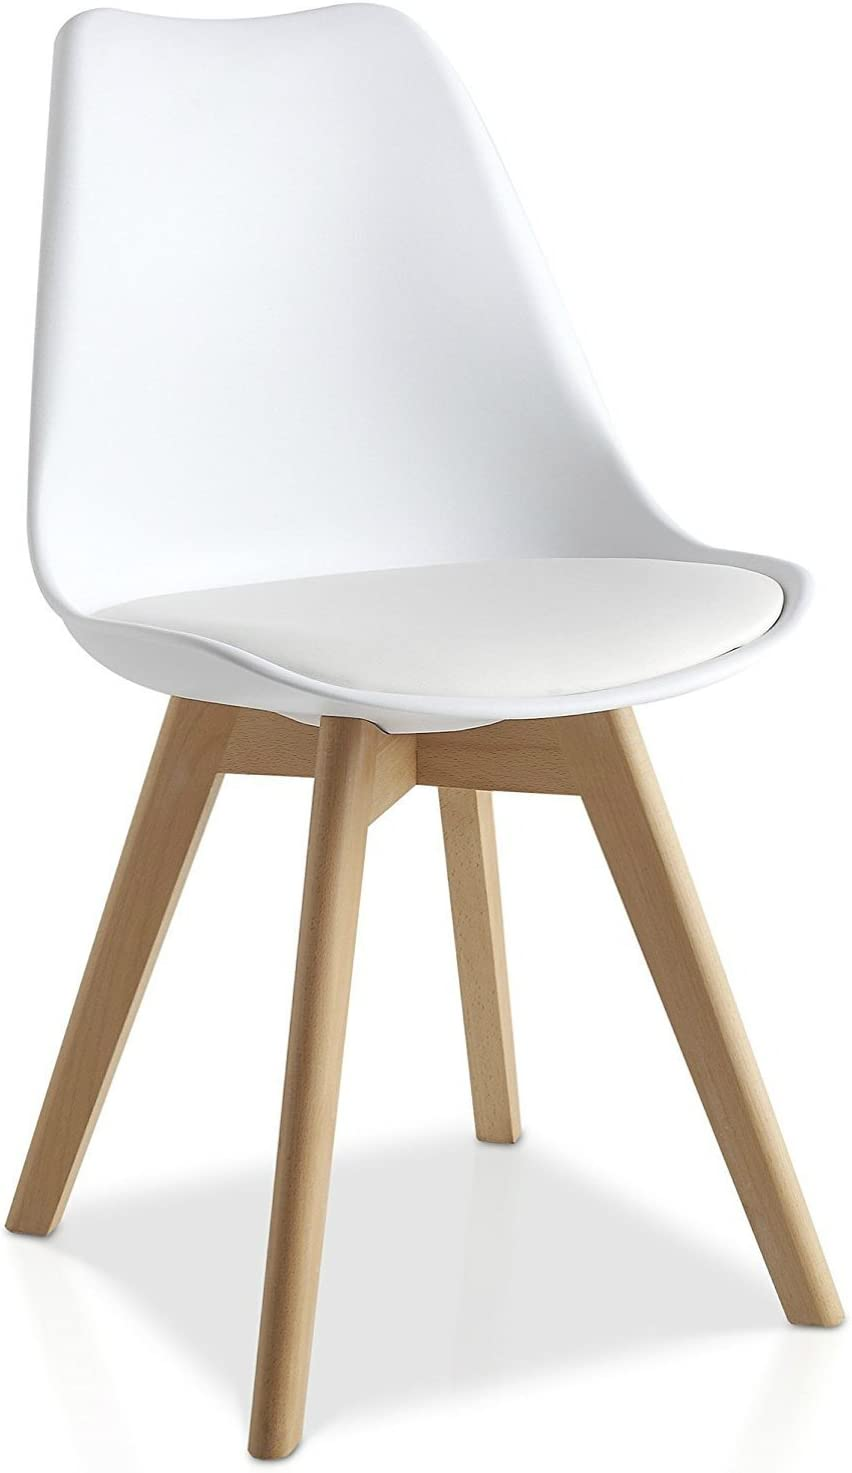 Mmilo Tulip Pyramid Dining Chair Office Chair With Solid Wood Legs PU Faux Leather Cushion (White)